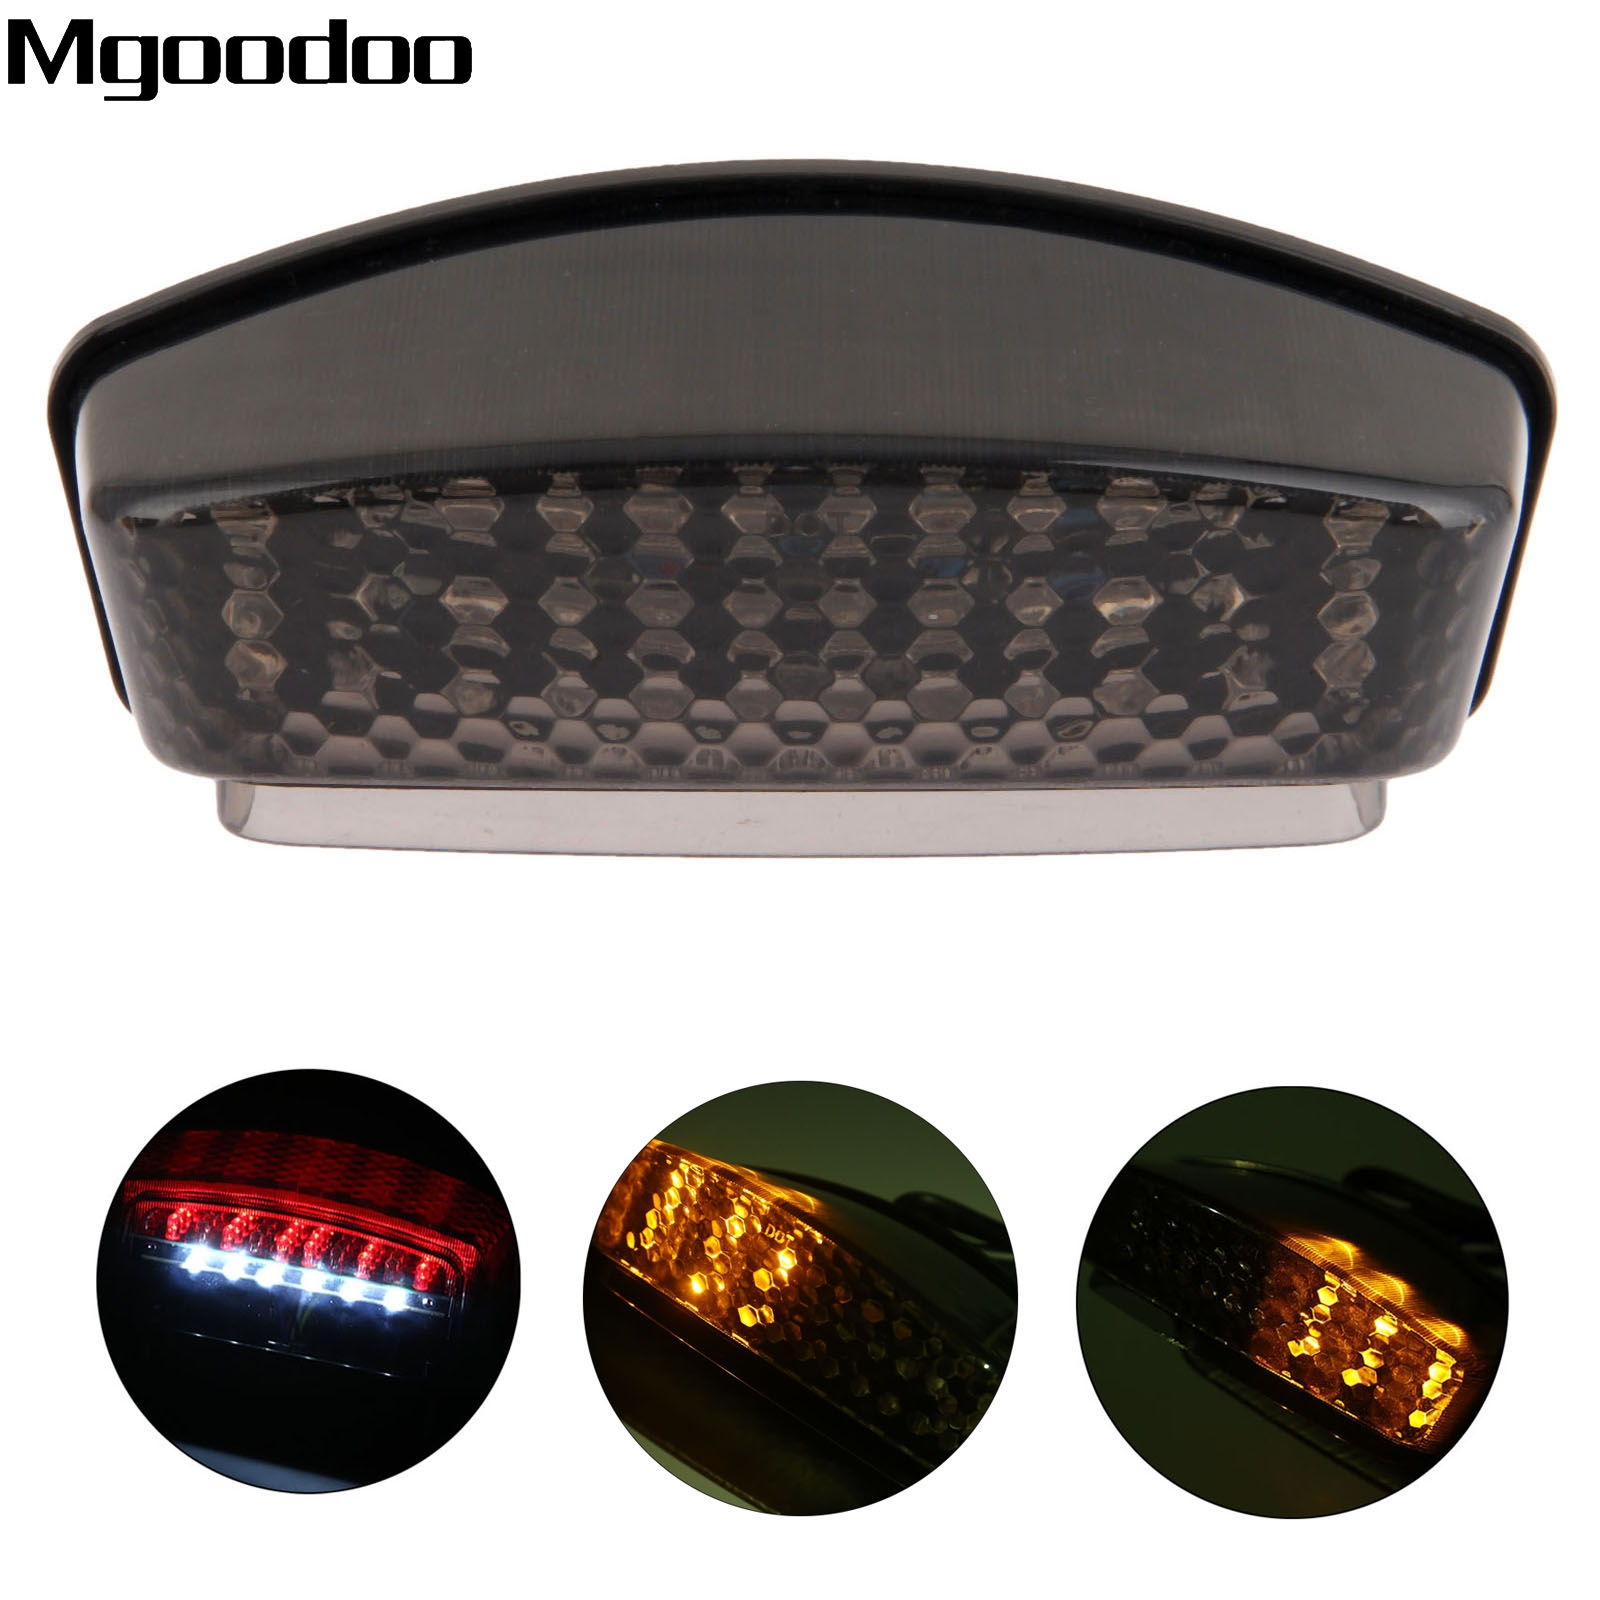 Mgoodoo Smoked Motorcycle LED Brake Tail Light Tailight Turn Signal Indicators For Ducati Monster 900 94-08 1000 S2R S4R S4 S4RS brake clutch lever for ducati monster s4 s4r 900 1000 multistrada 1000 1100 s2r 1000 motorcycle adjustable folding extendable